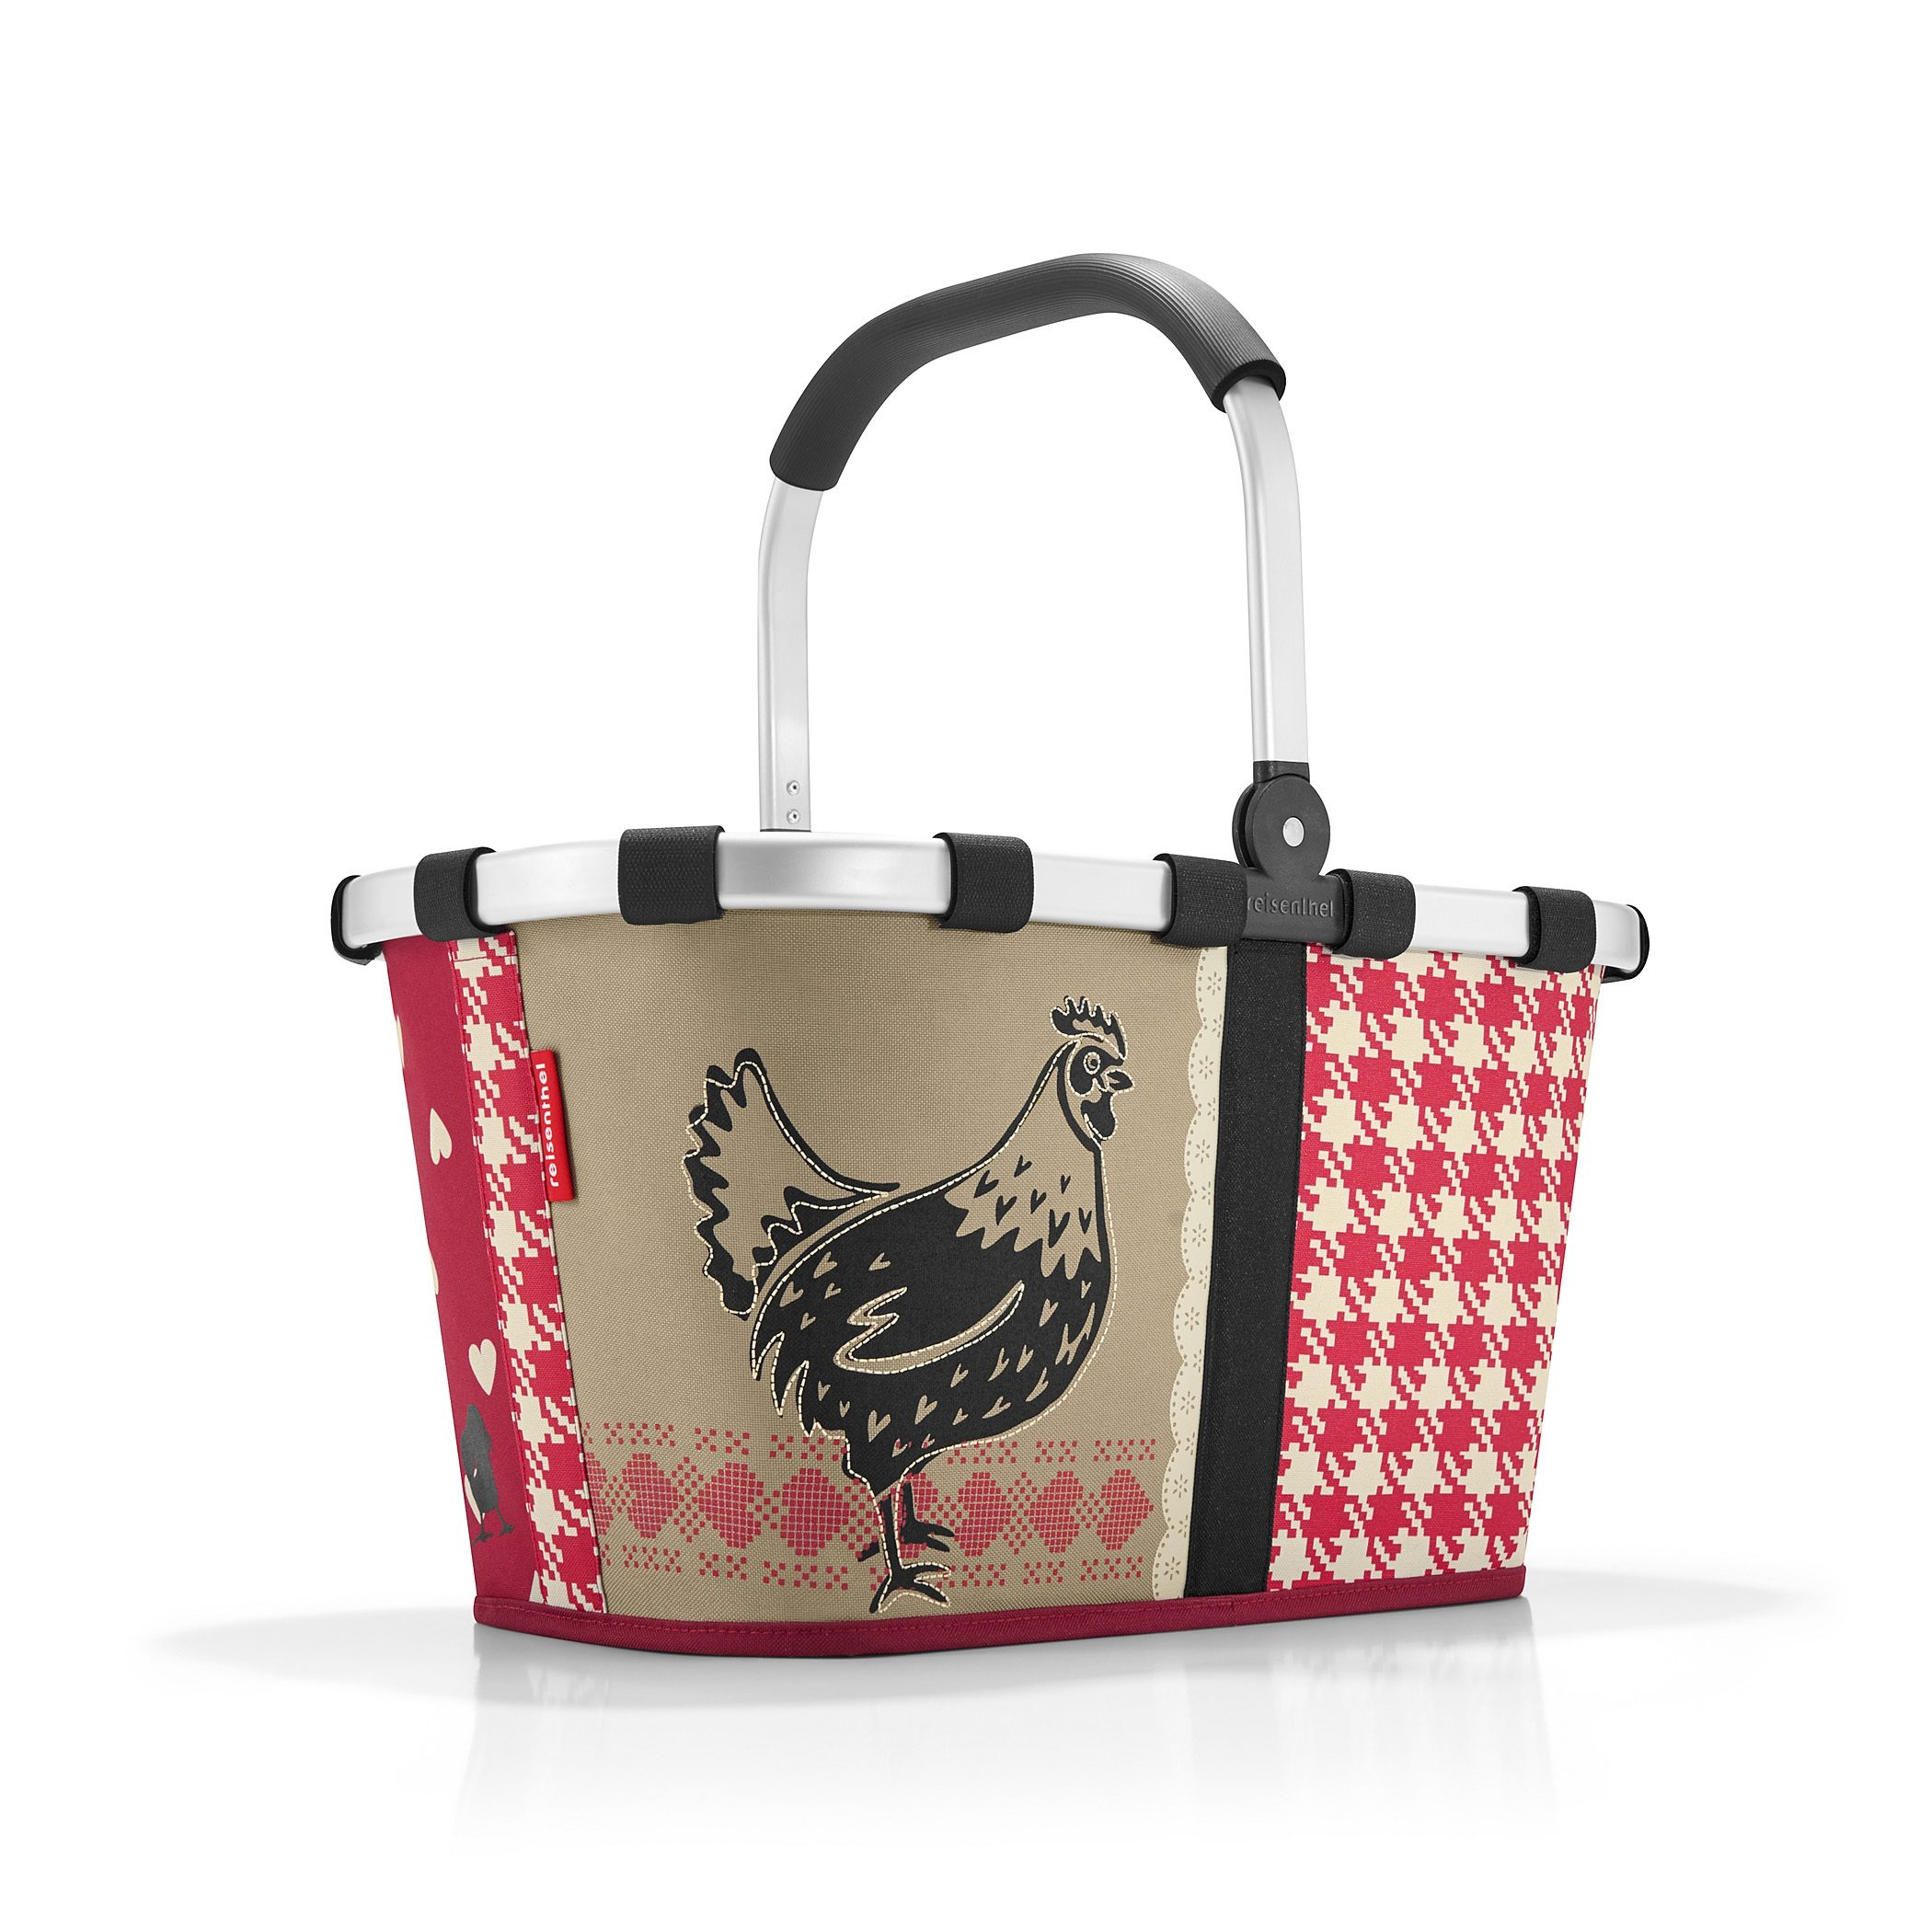 REISENTHEL® Einkaufskorb »carrybag special edition country«